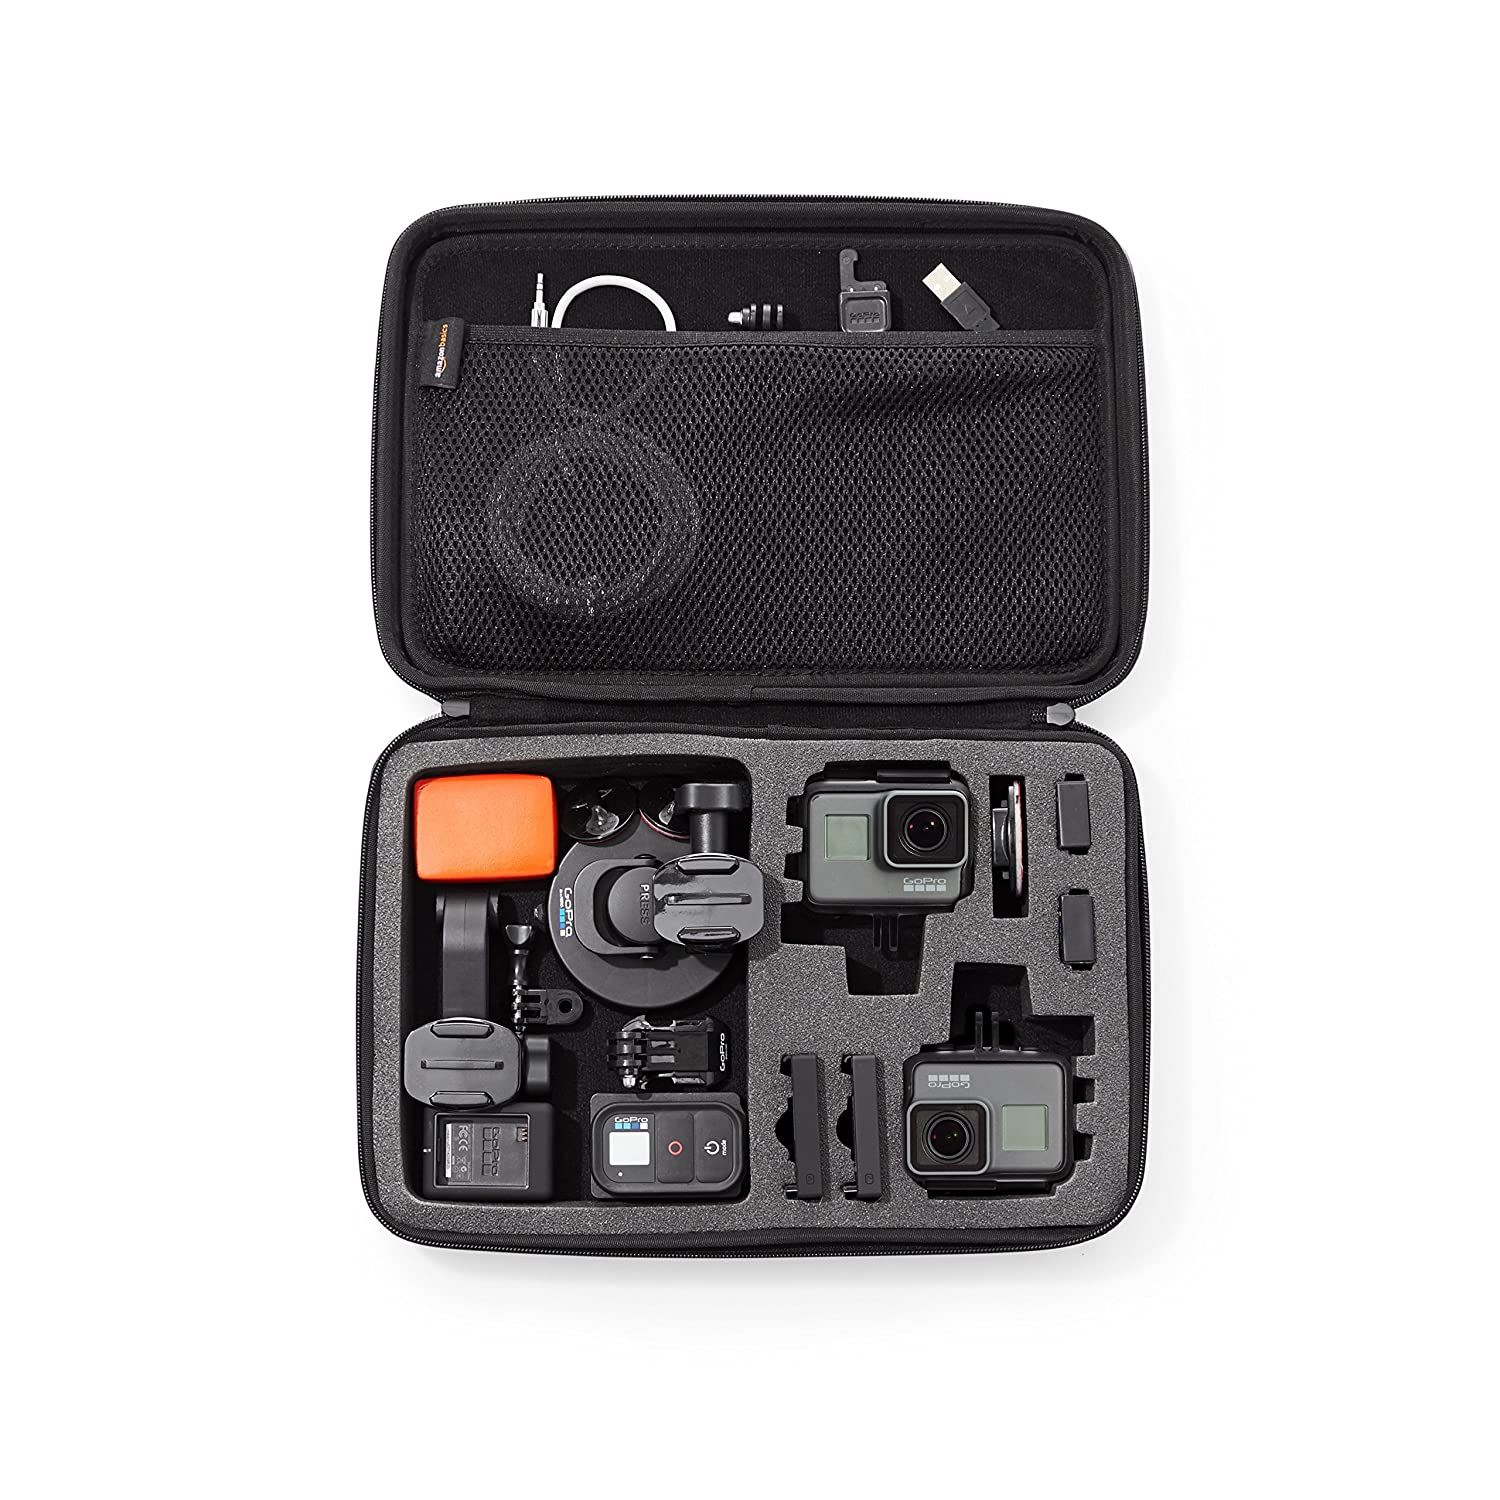 Amazon.com : AmazonBasics Carrying Case for GoPro - Large : Camera ...